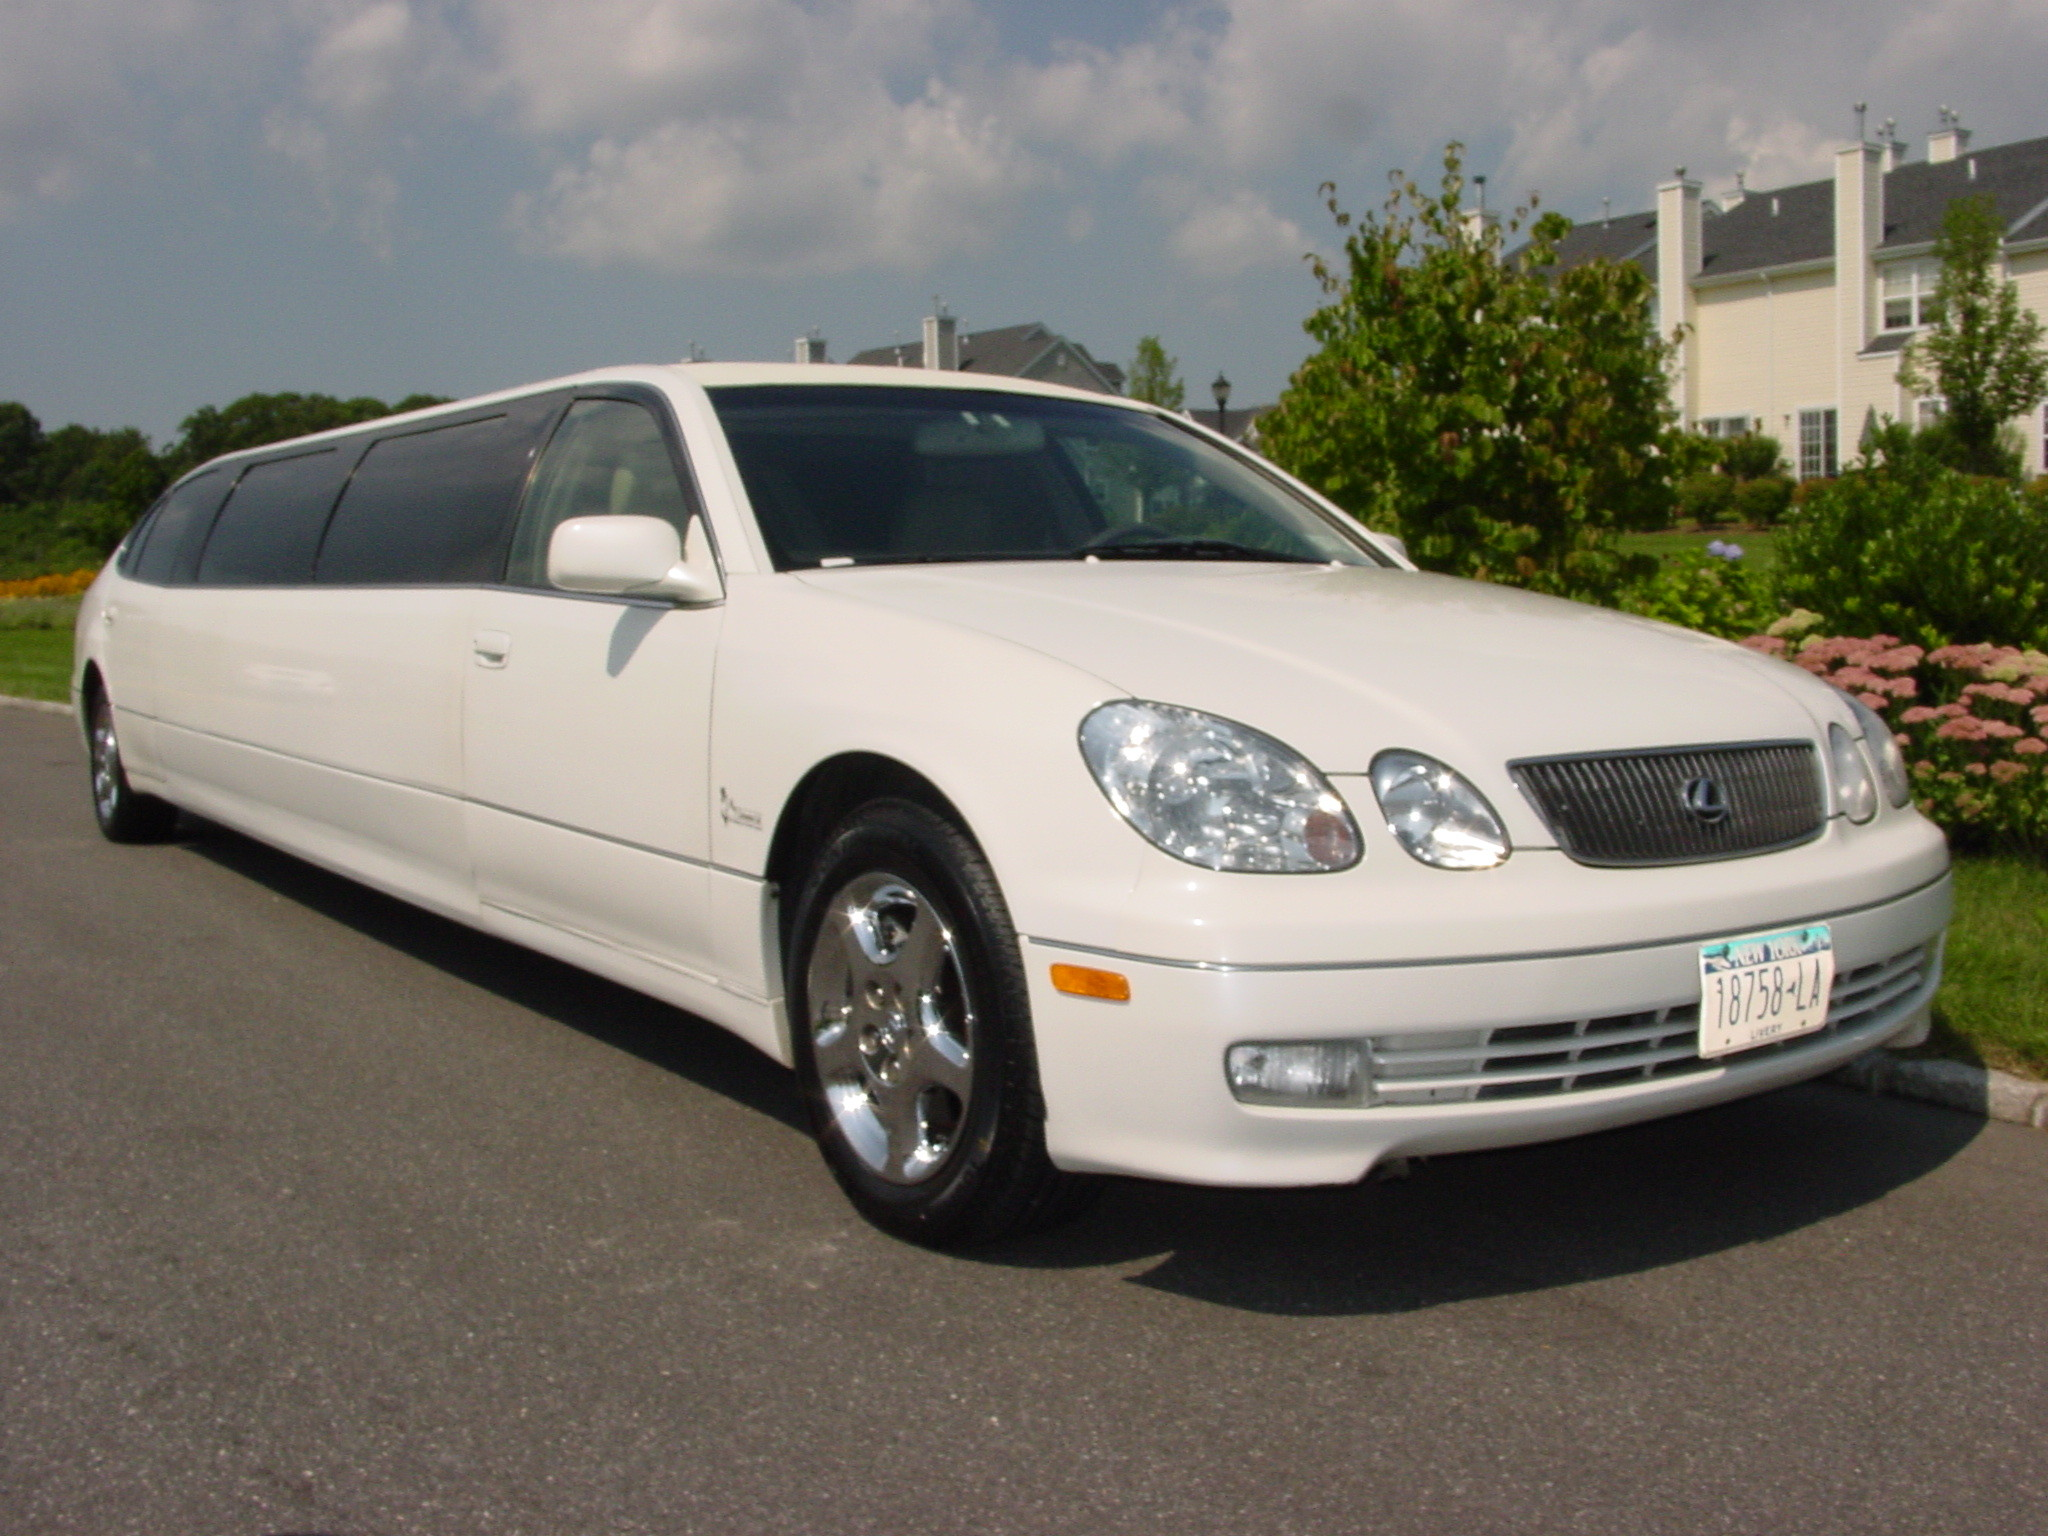 Top Places To Go With A Limo For Valentines Day With Friends and